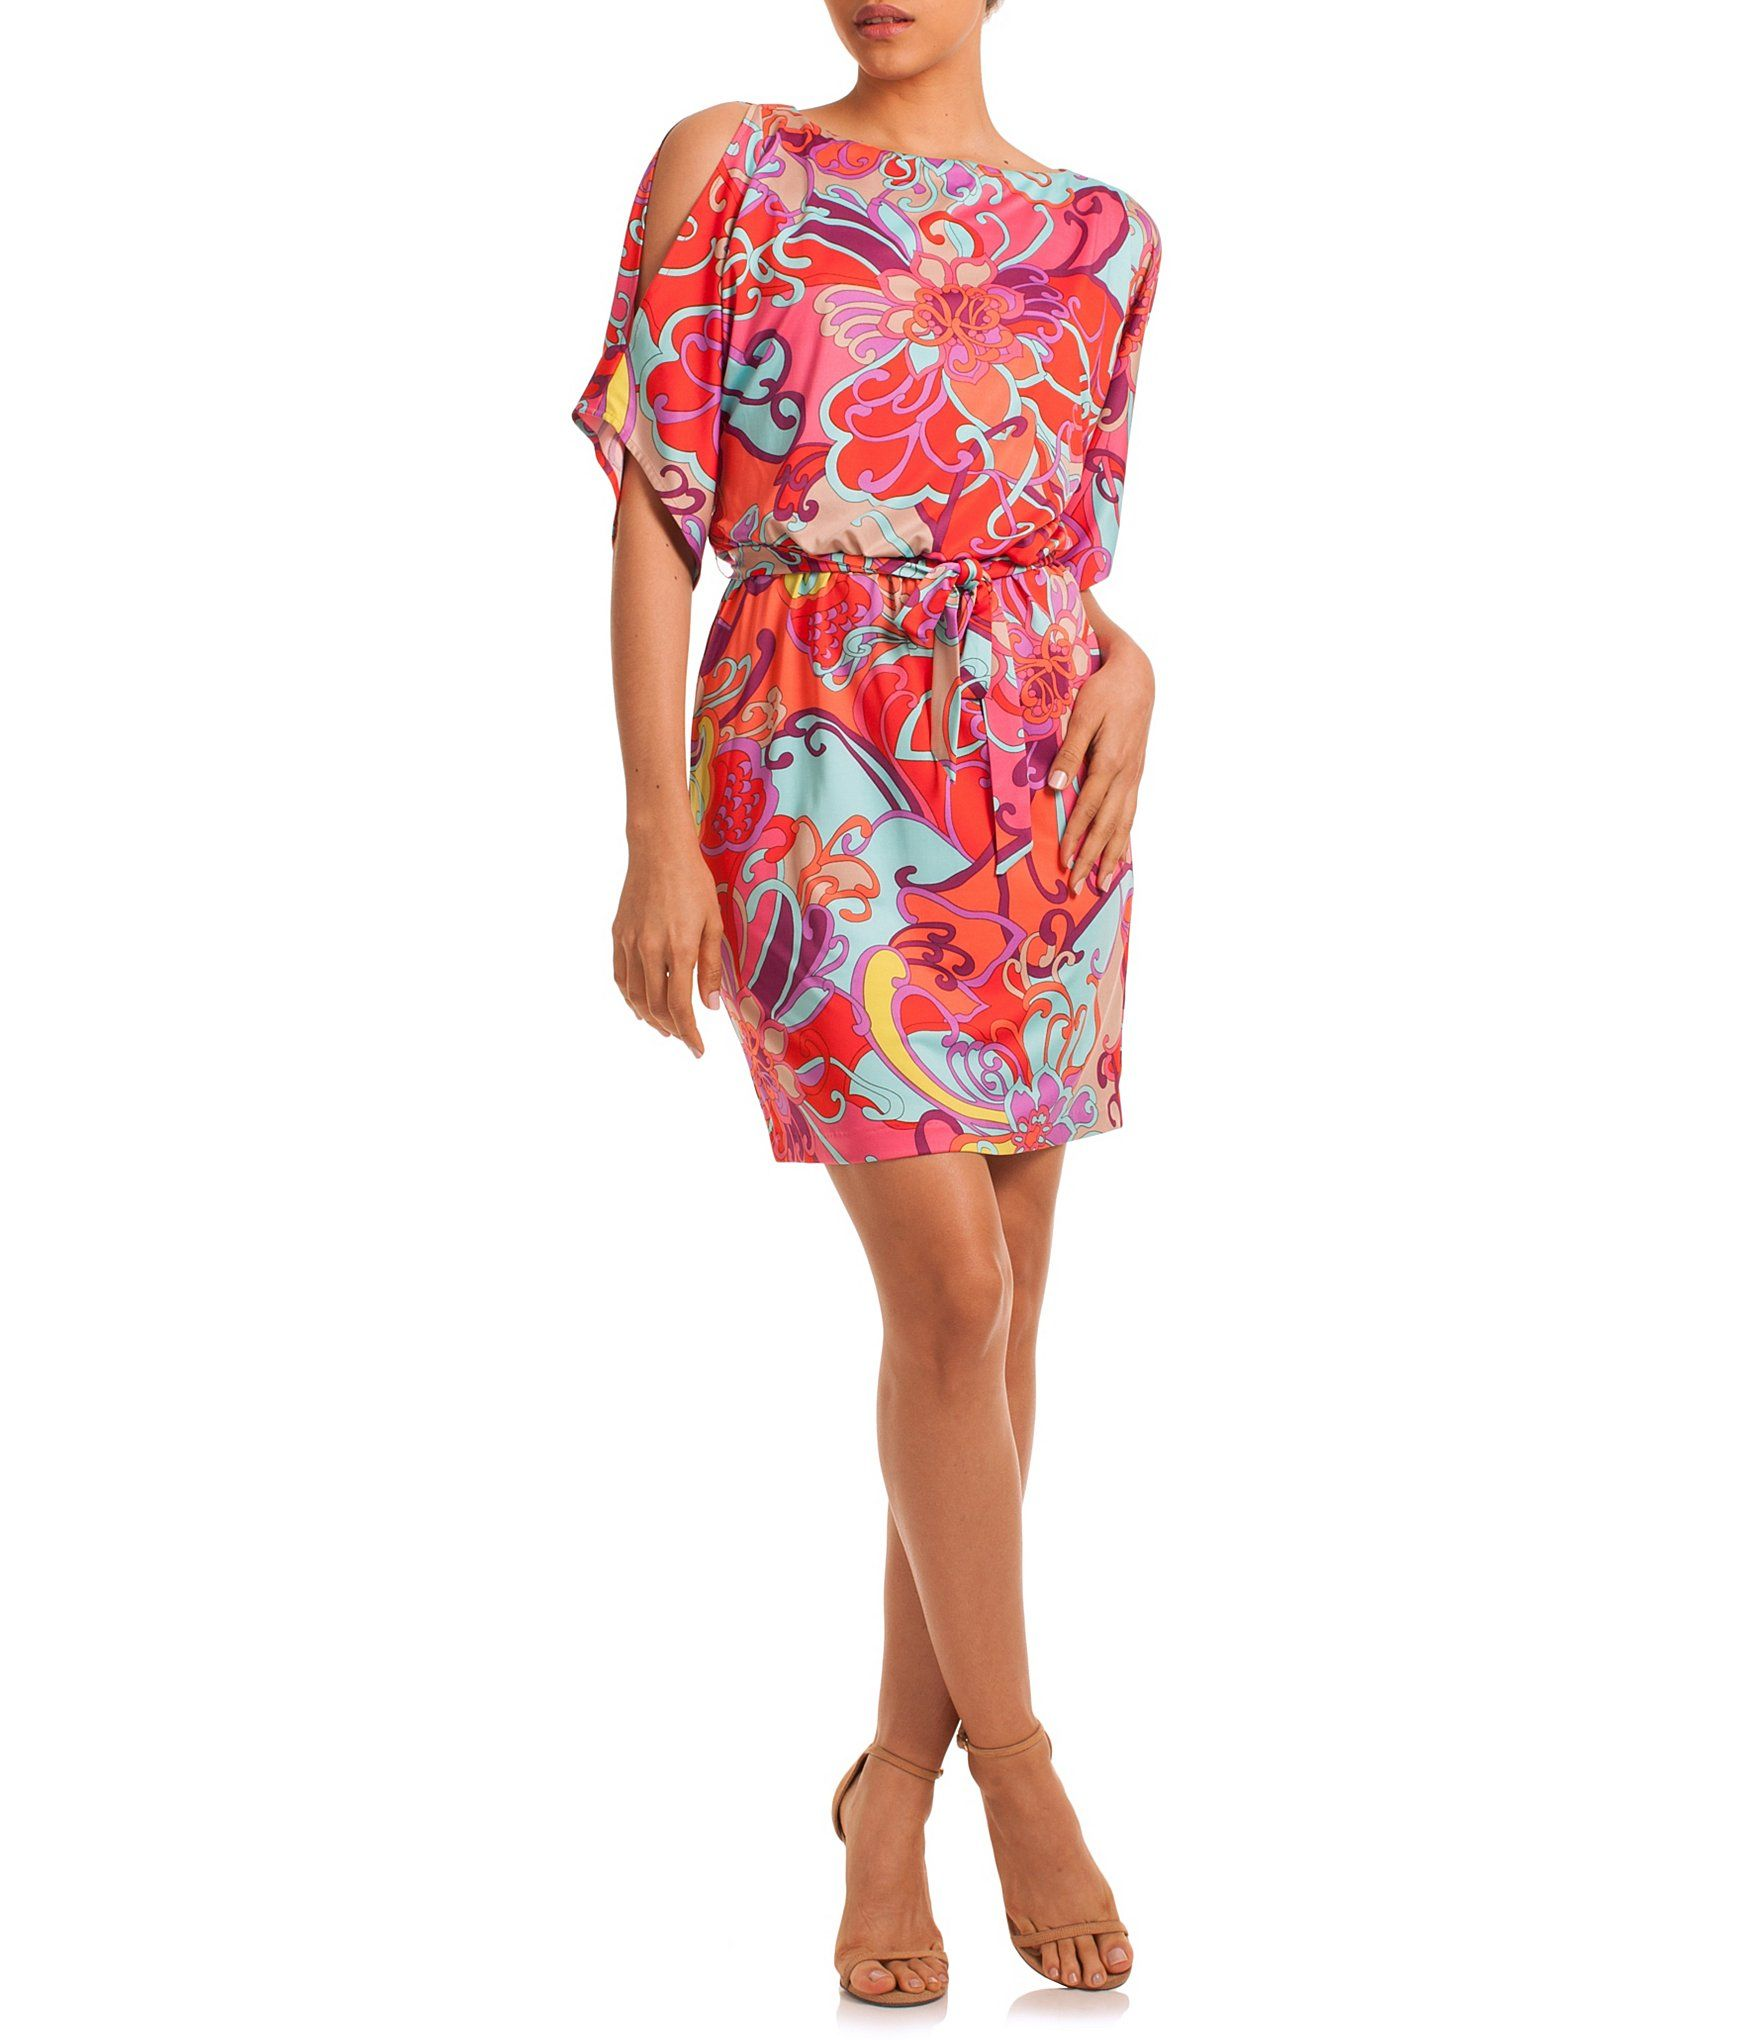 cccd187d07 Shop for trina by Trina Turk Printed Blouson Cold Shoulder Dress at Dillards.com.  Visit Dillards.com to find clothing